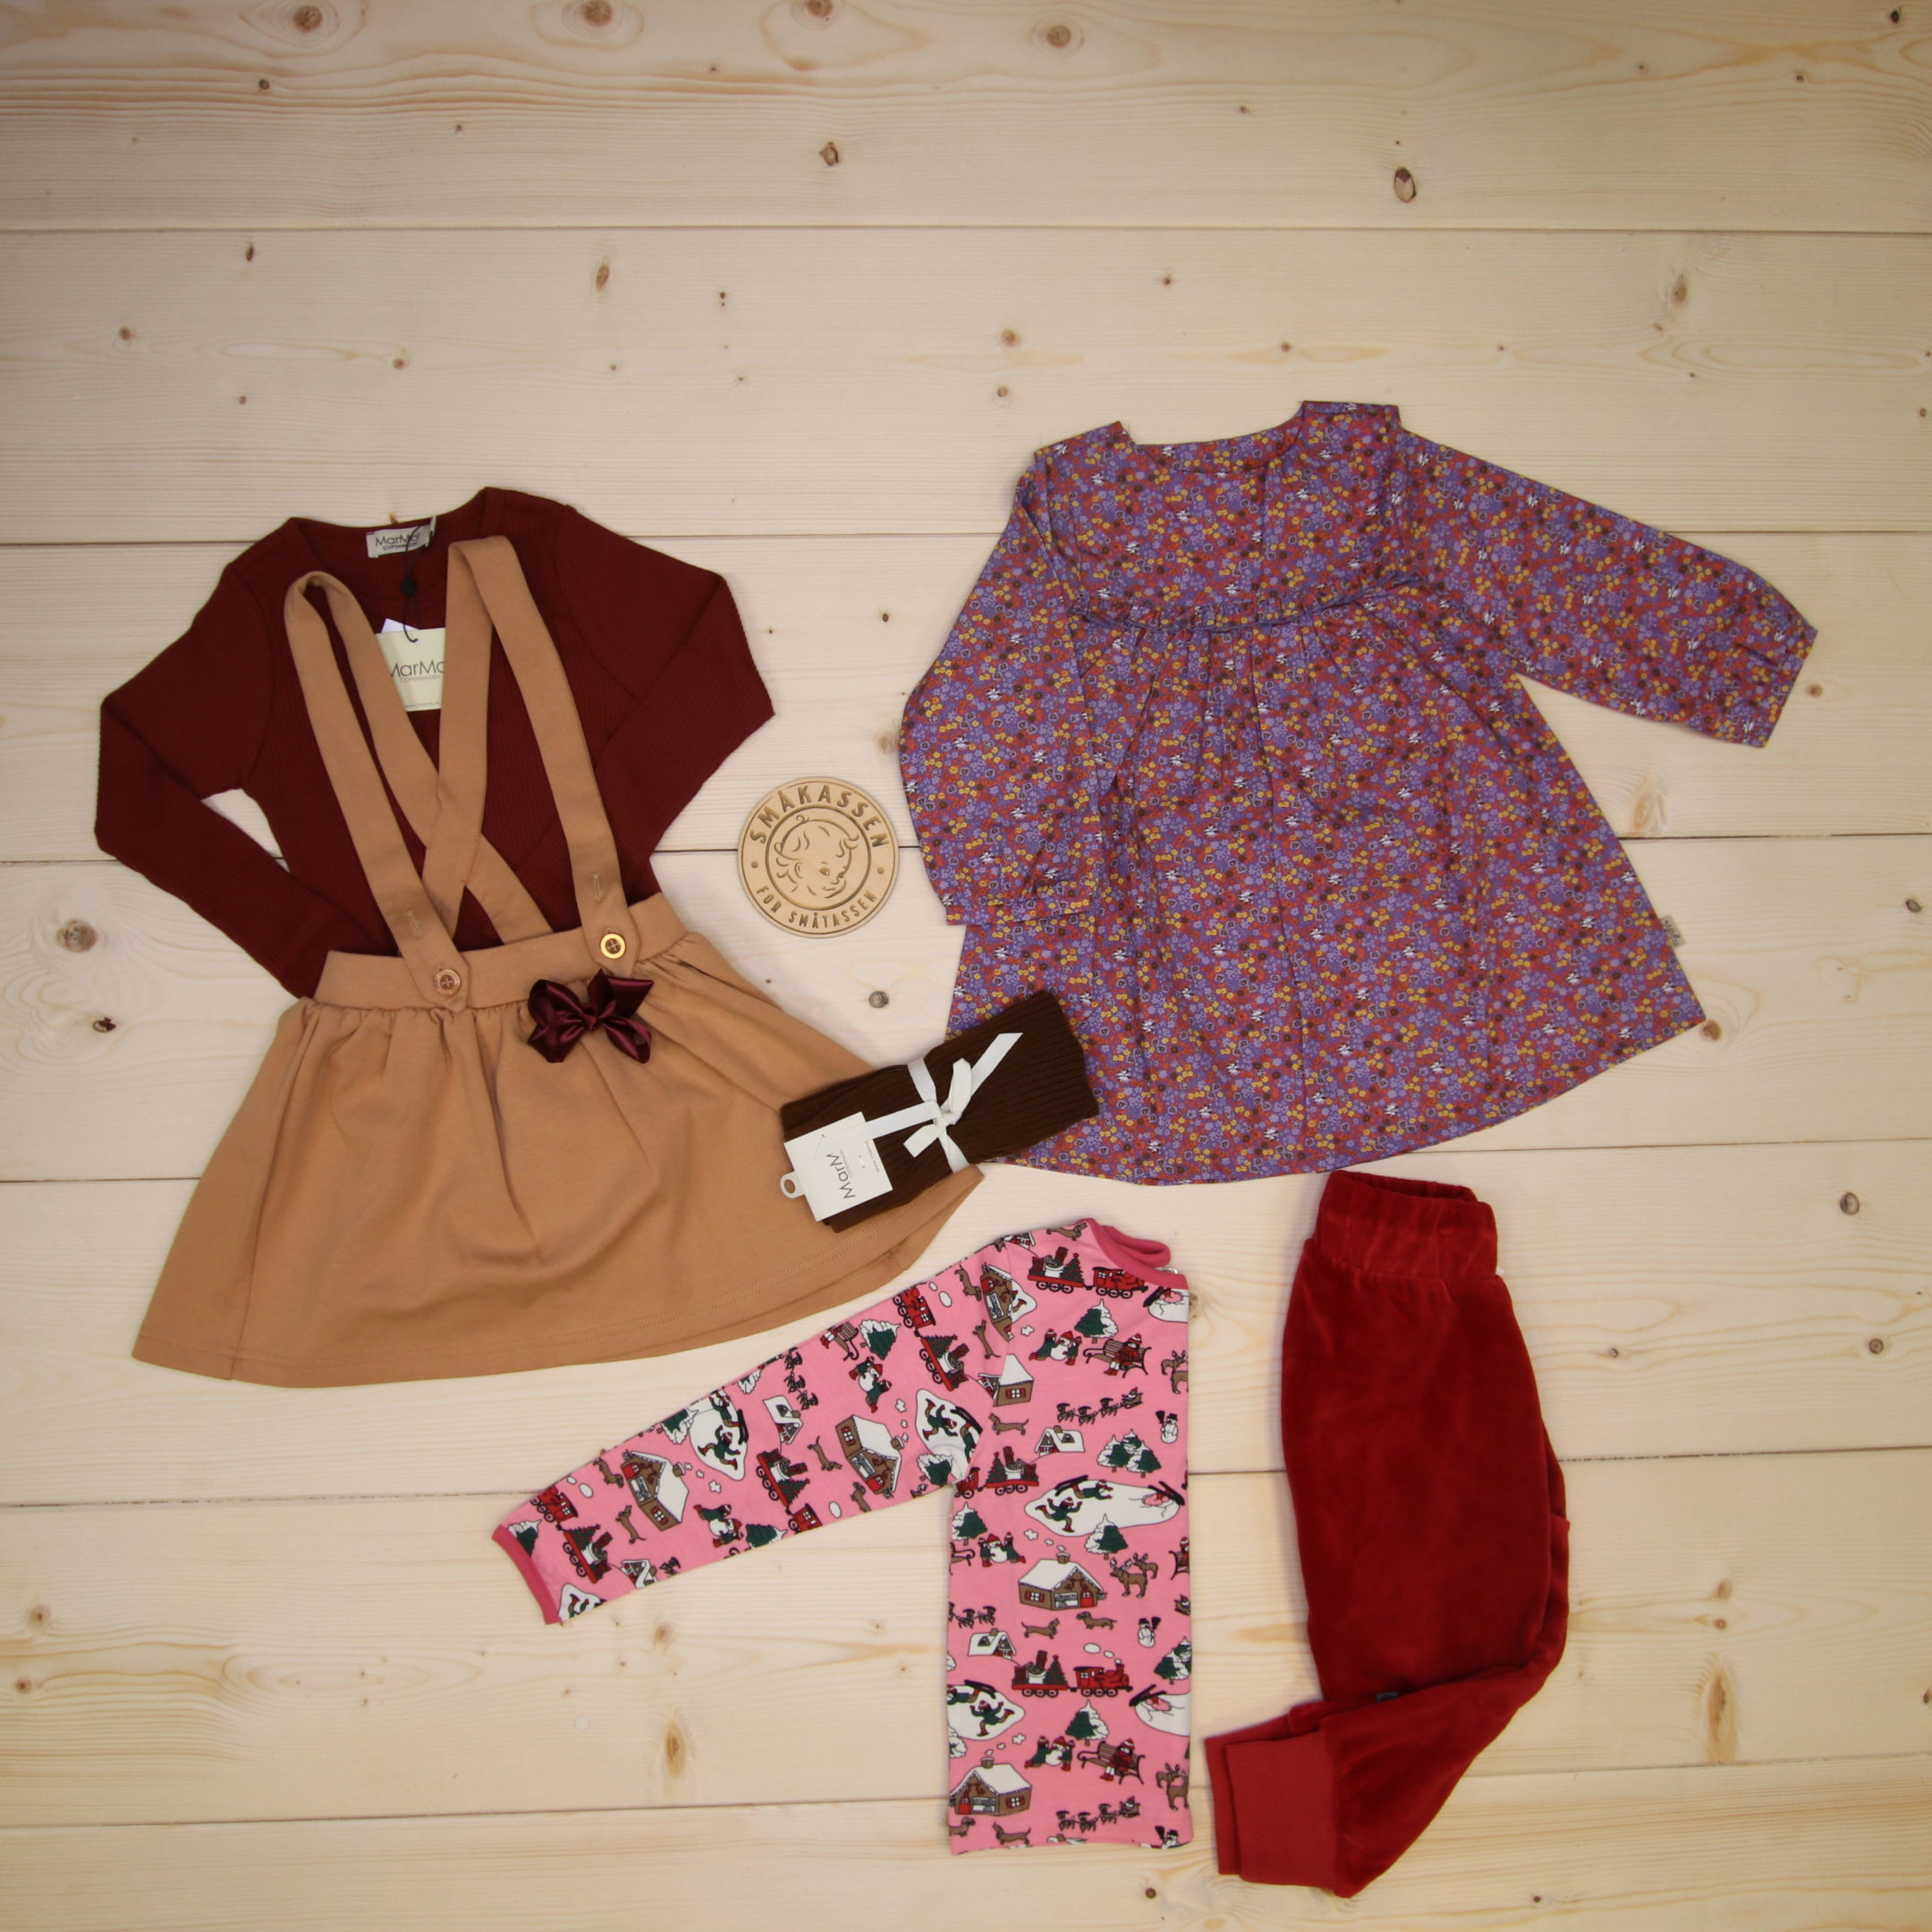 This is Småkassen that we prepared for a girl in the style cute in size 98.